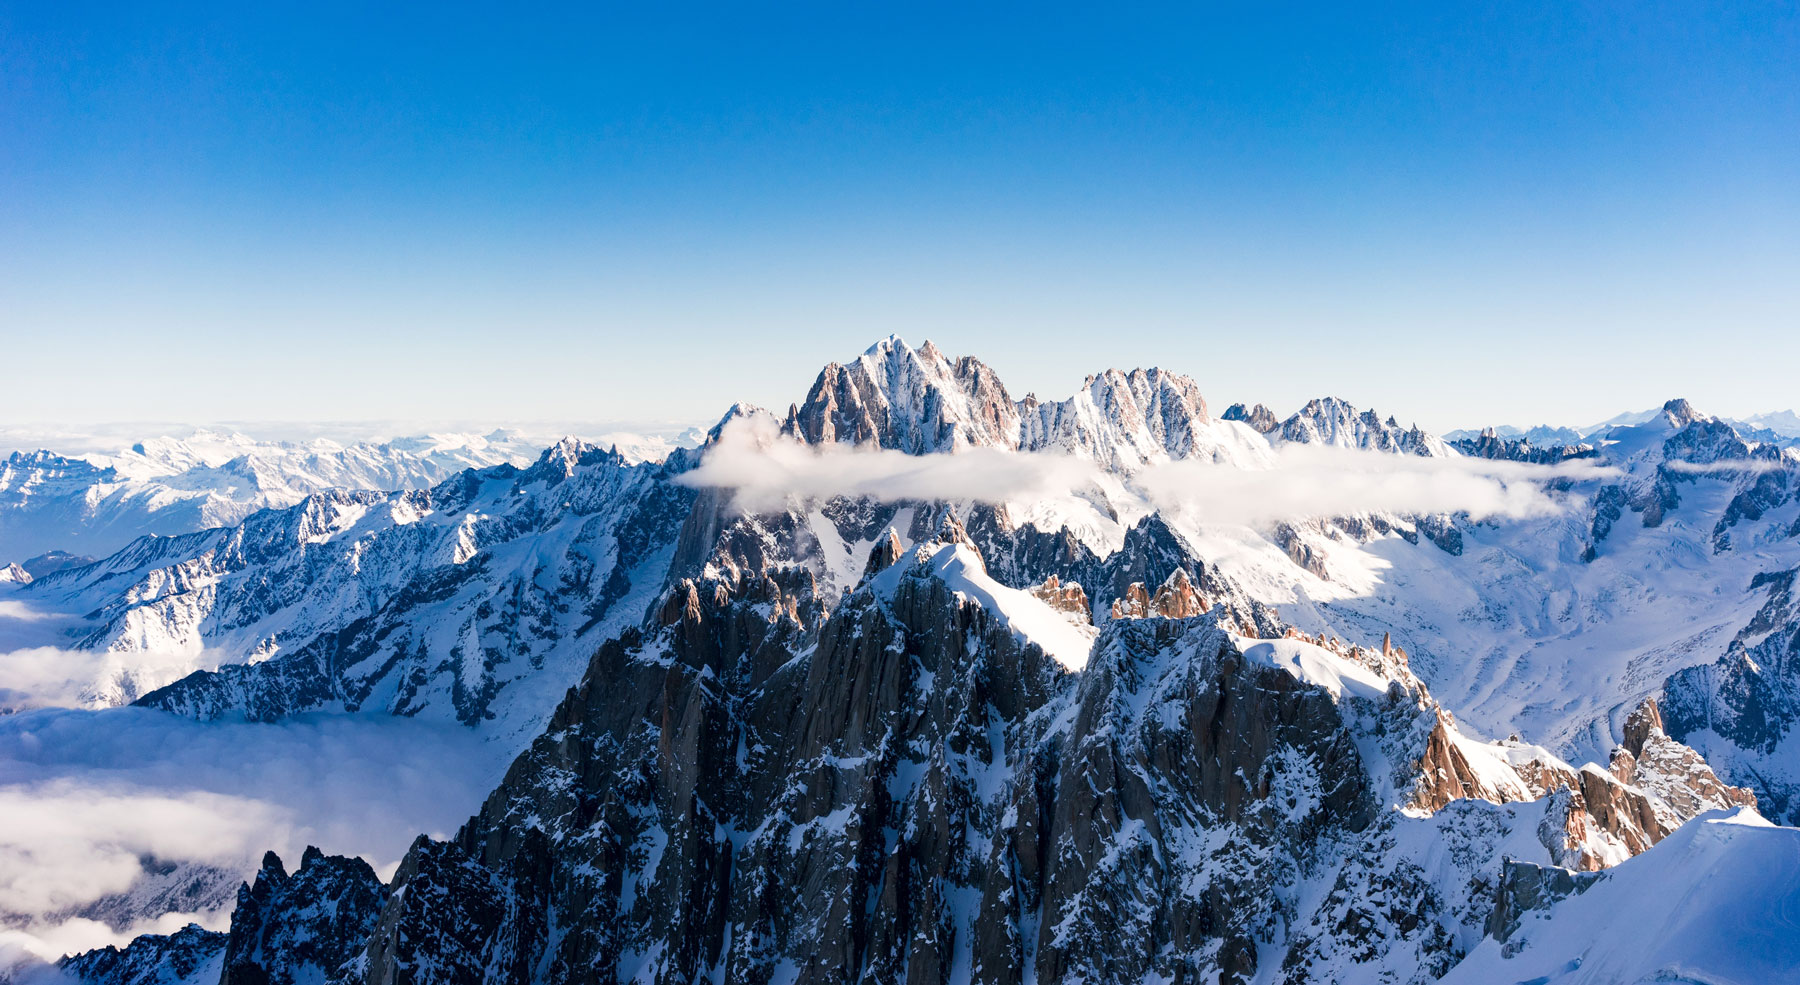 Mont blanc helicopter shoot